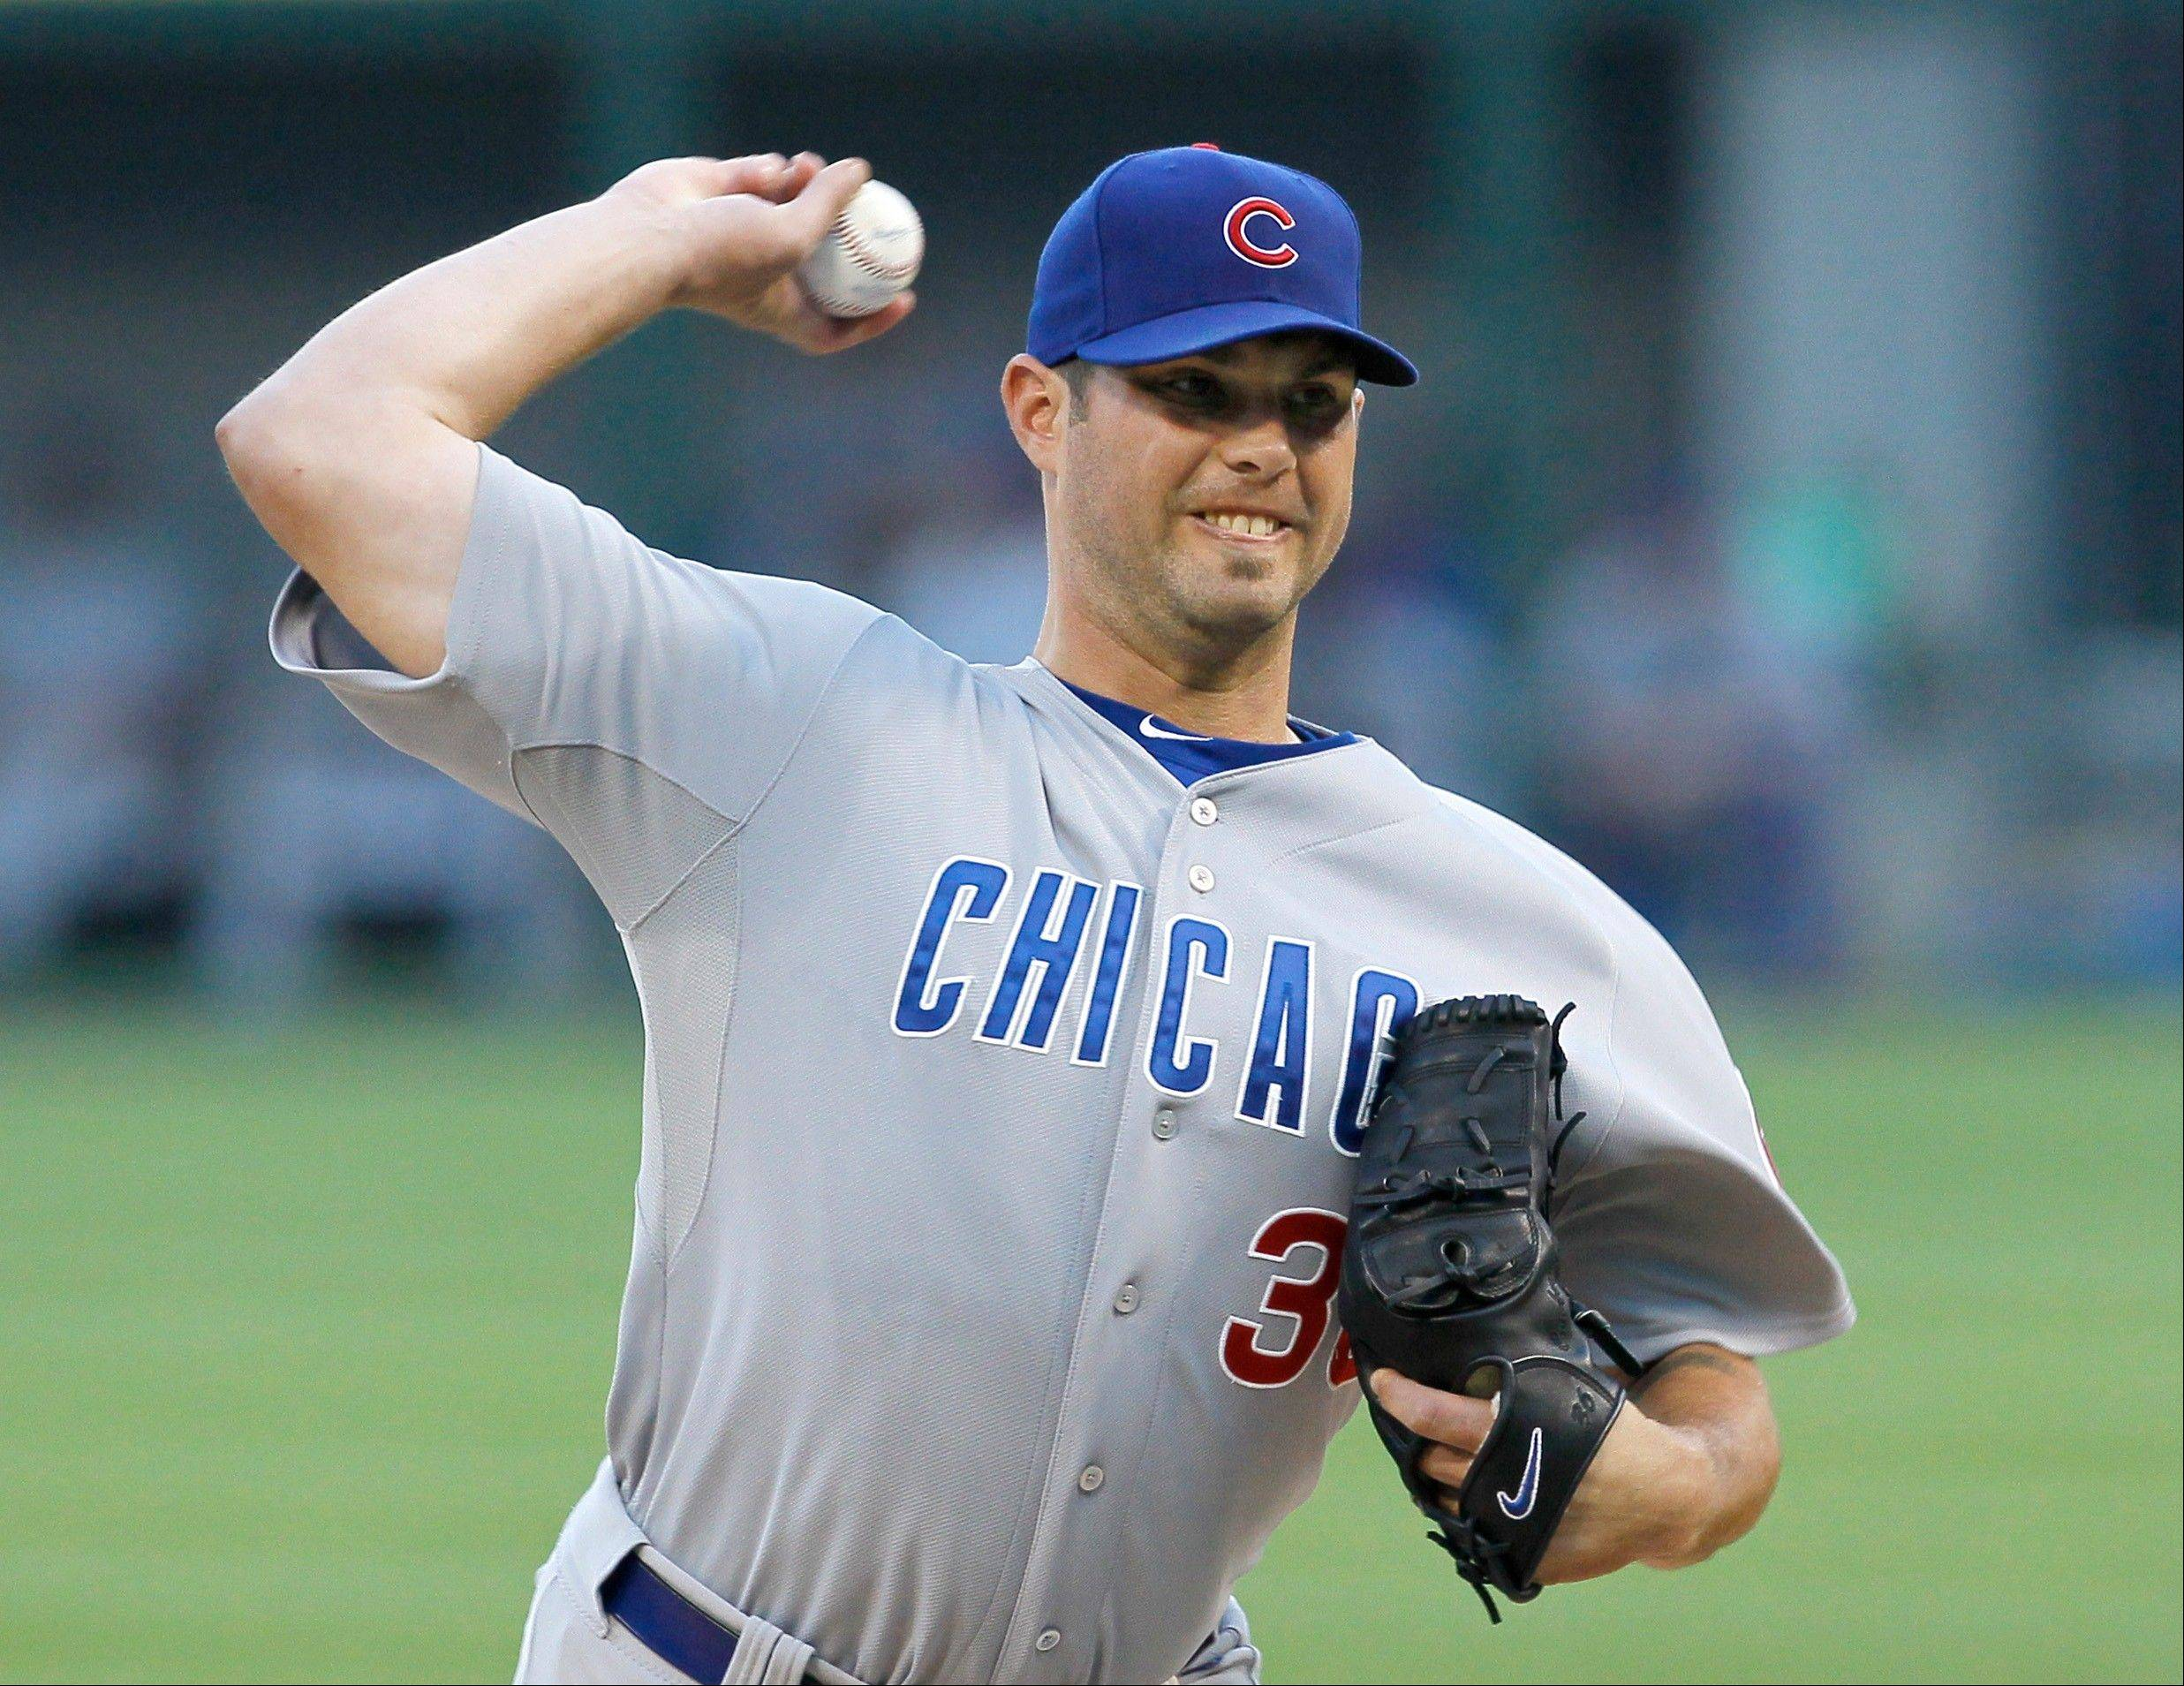 Relief pitcher Randy Wells was 1-2 in 12 games last season for the Cubs.